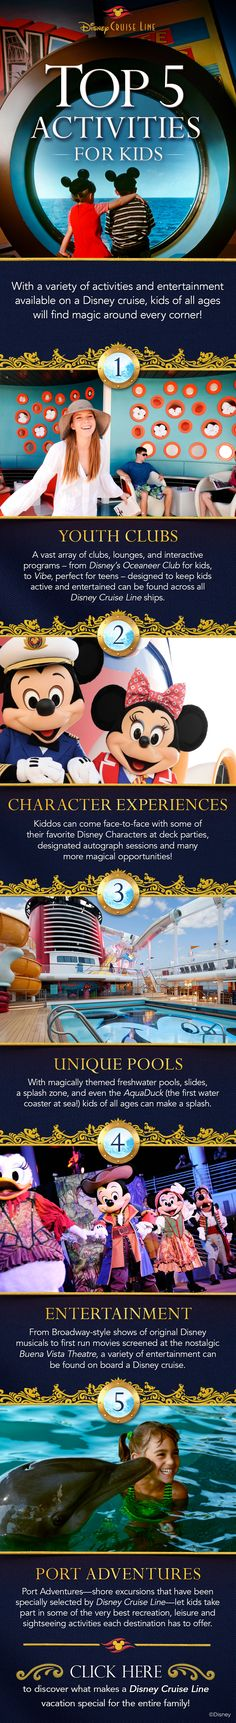 Check out these top 5 activities for kids on a Disney Cruise vacation!